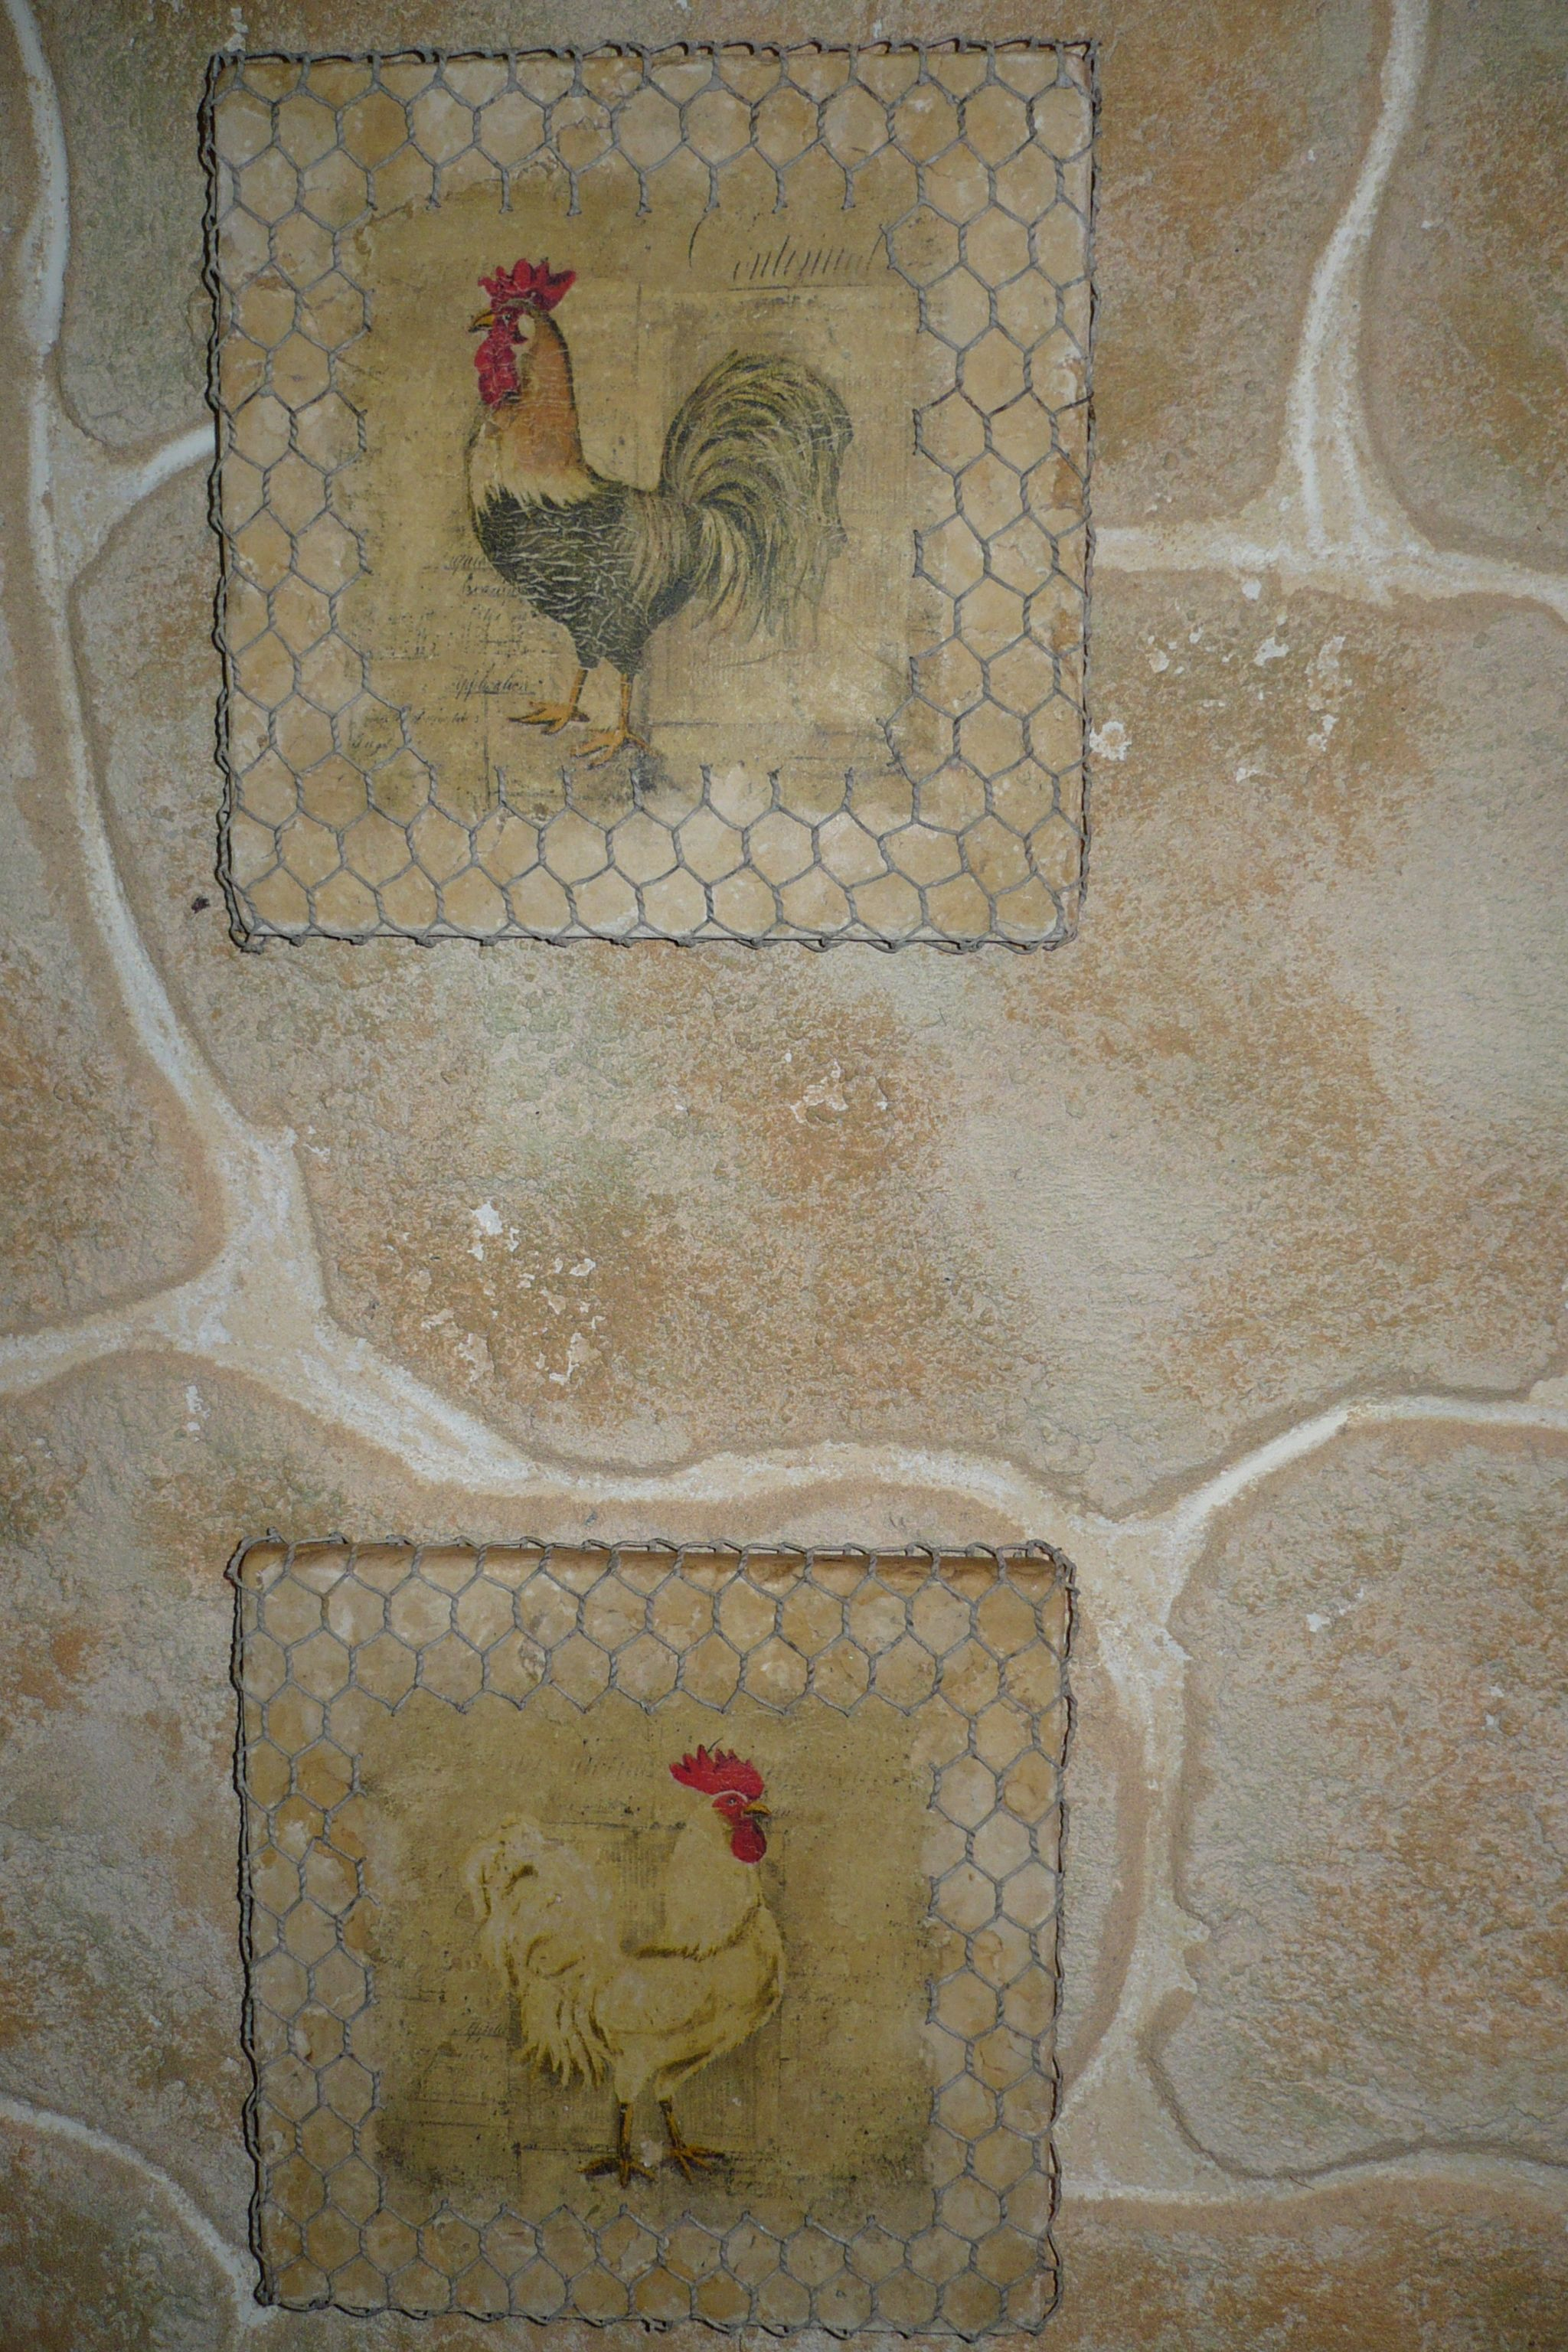 A Picture Of Roosters On Ceramic Tile With A Frame Made